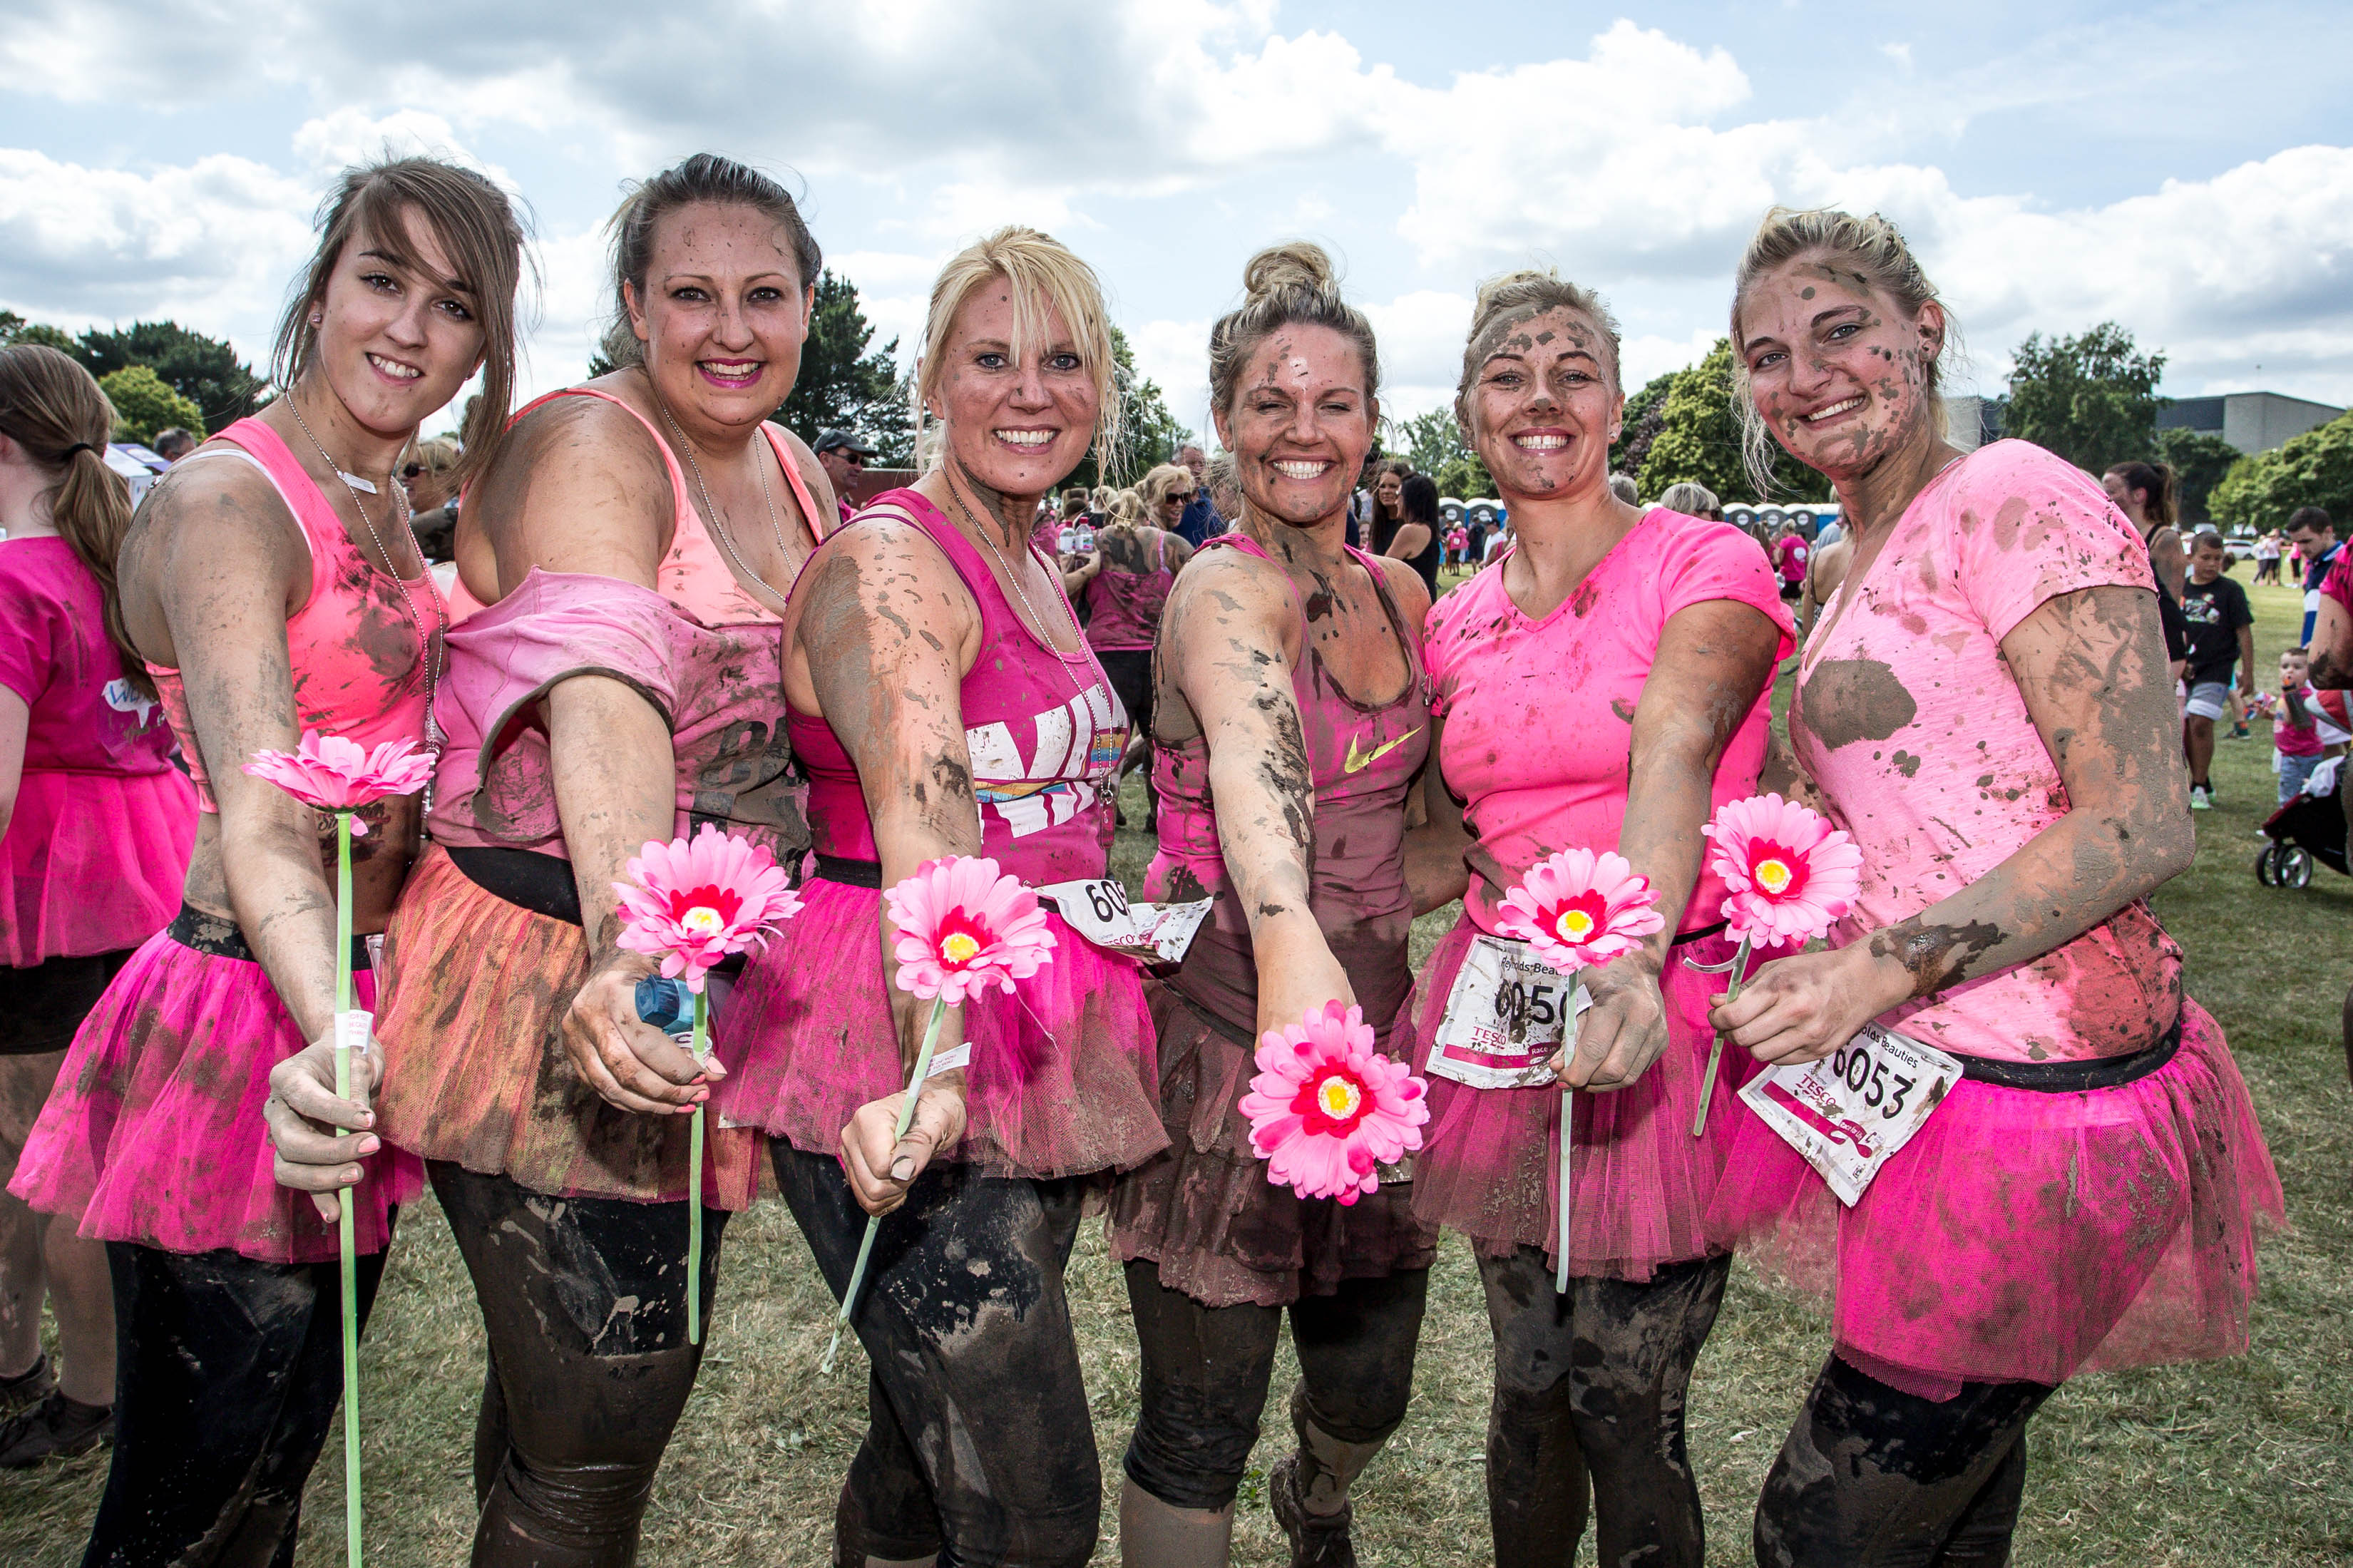 6 Race for Life Ladies Holding Flowers